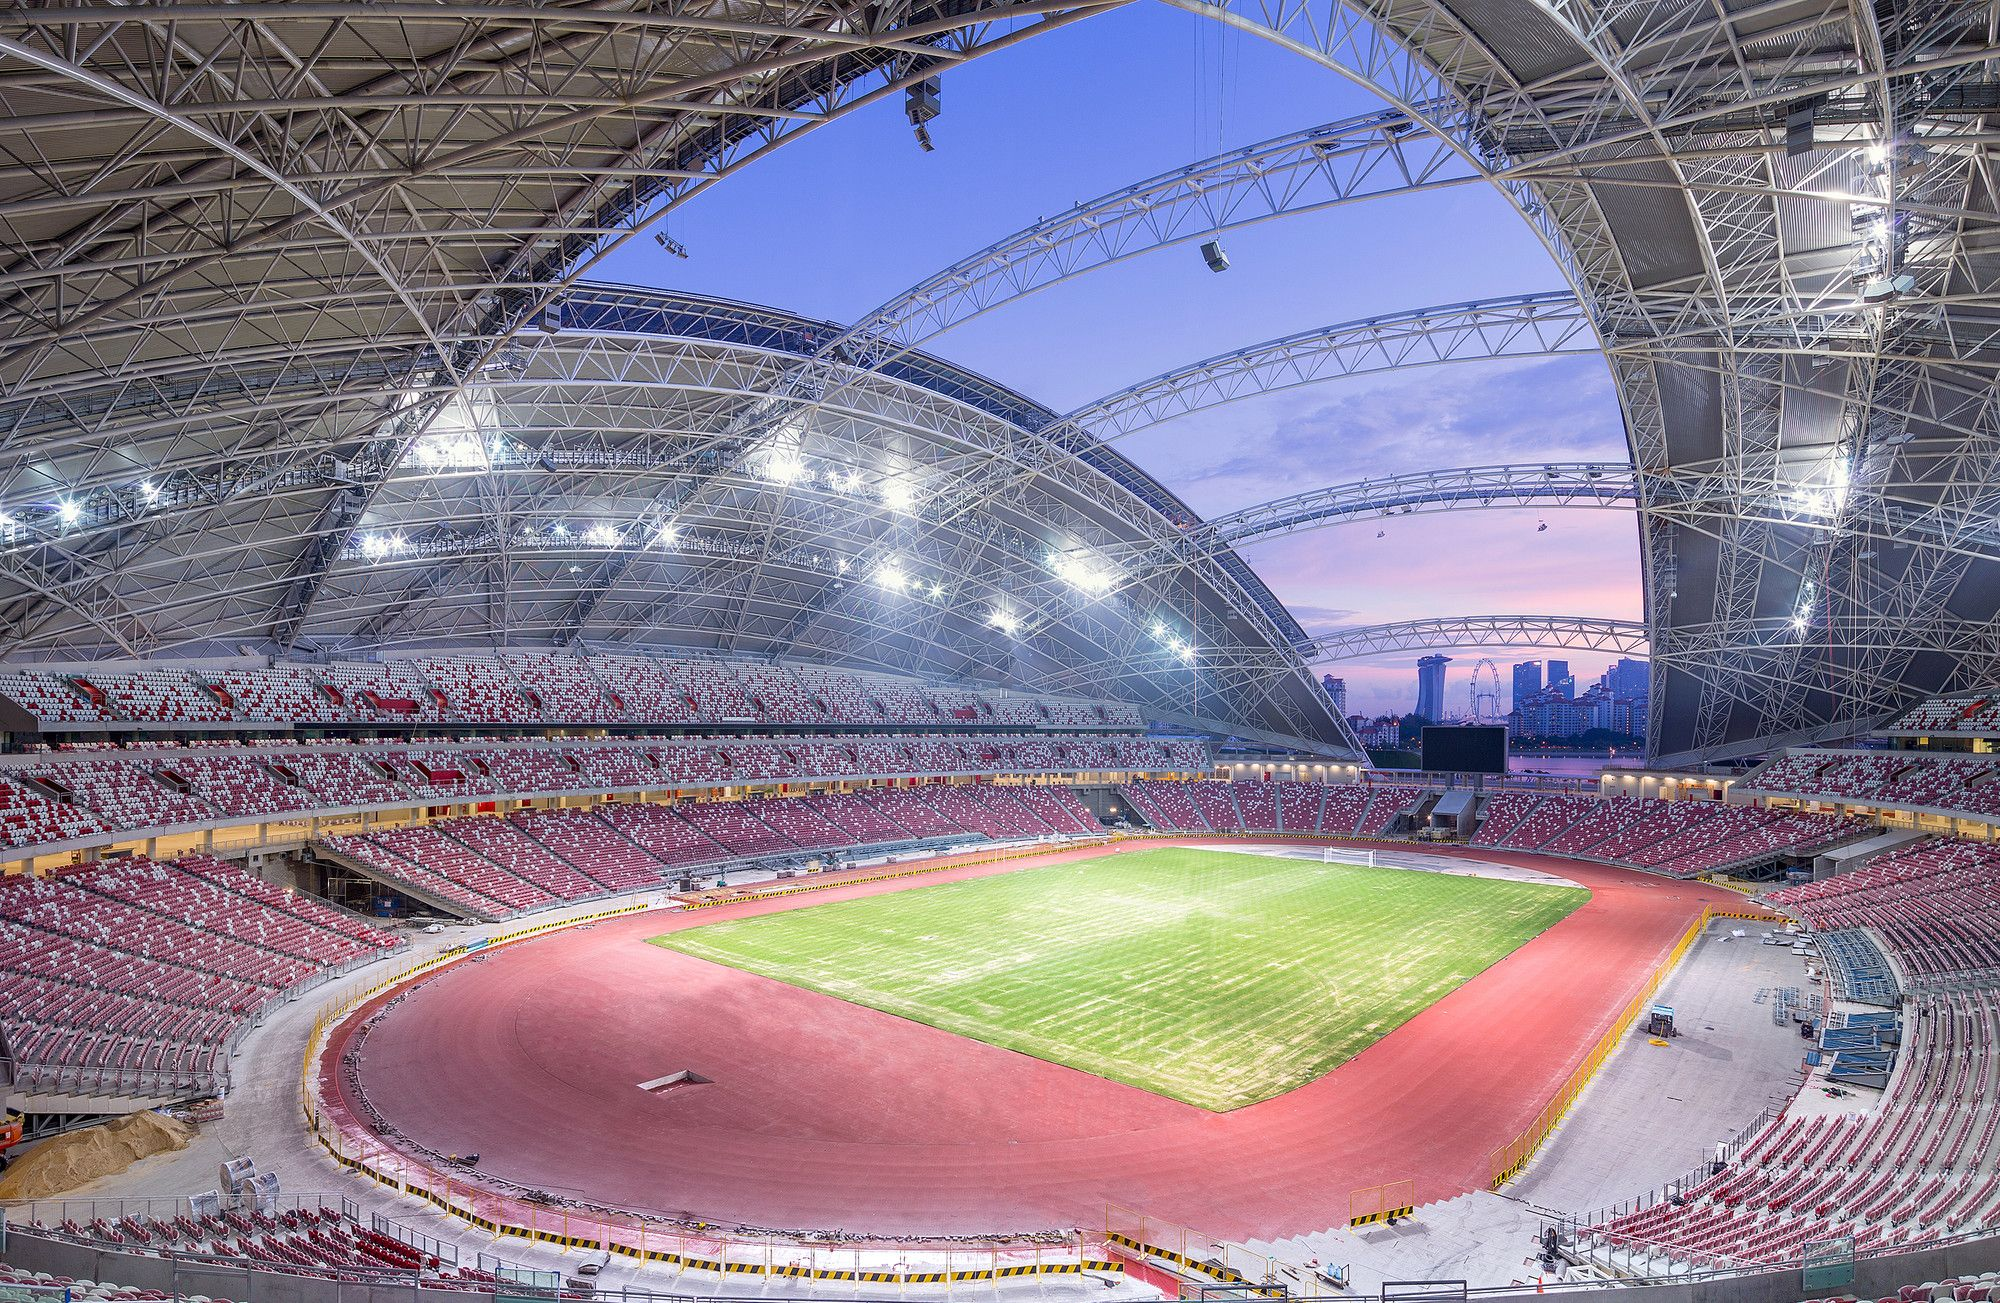 Gallery Of Singapore Sportshub Dparchitects 1 Dp Architects Singapore Dome Structure